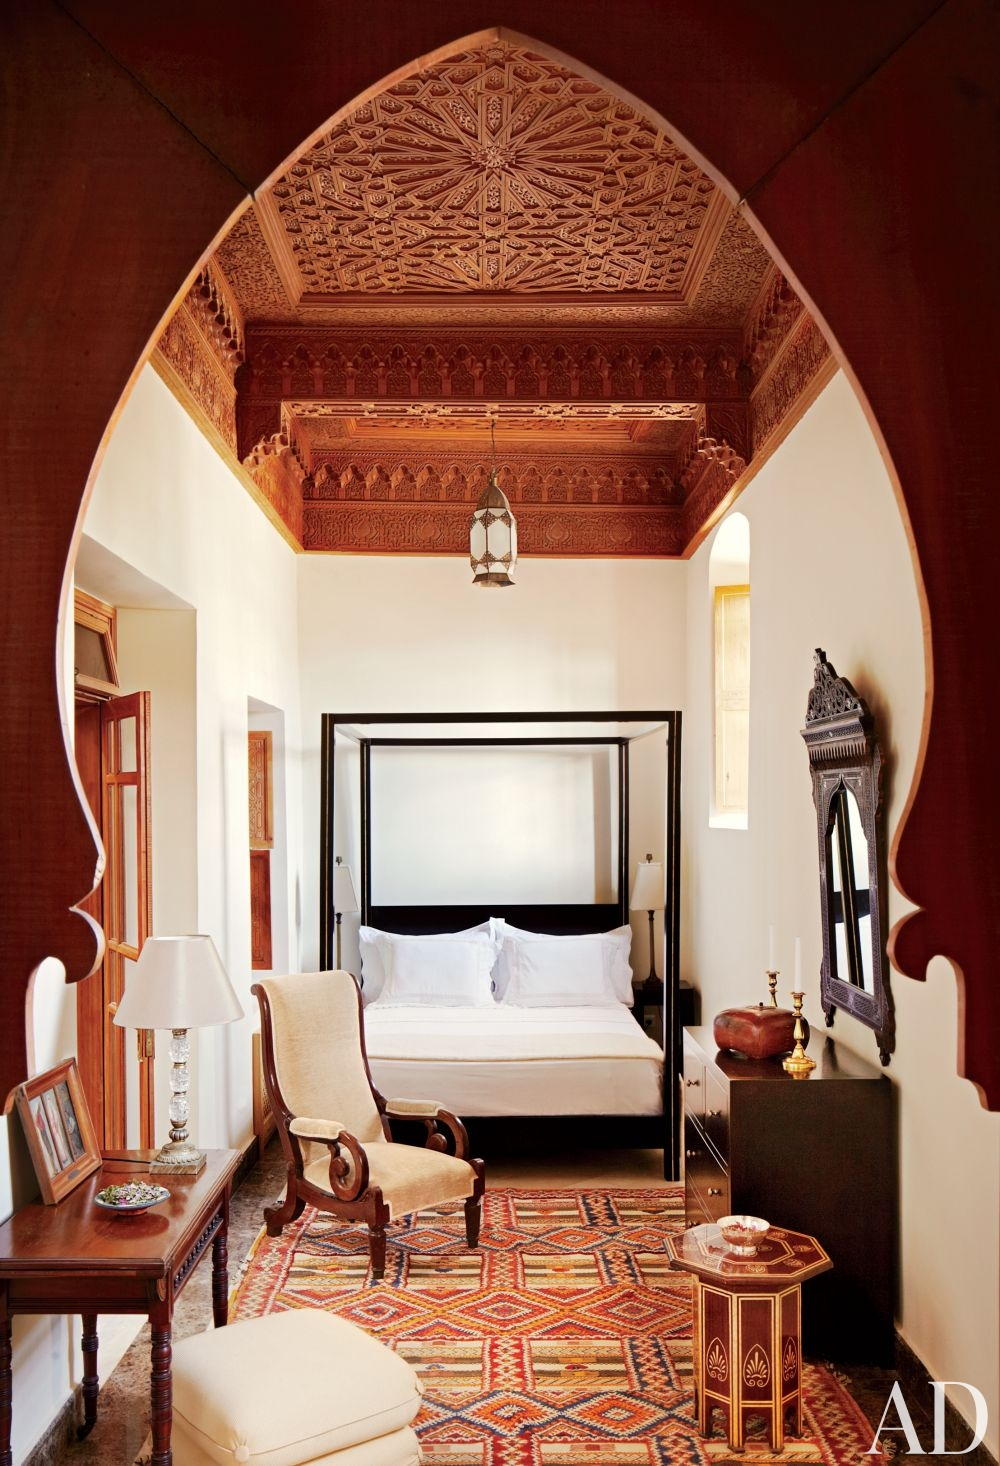 Moroccan betterdecoratingbible Moroccan decor ideas for the bedroom